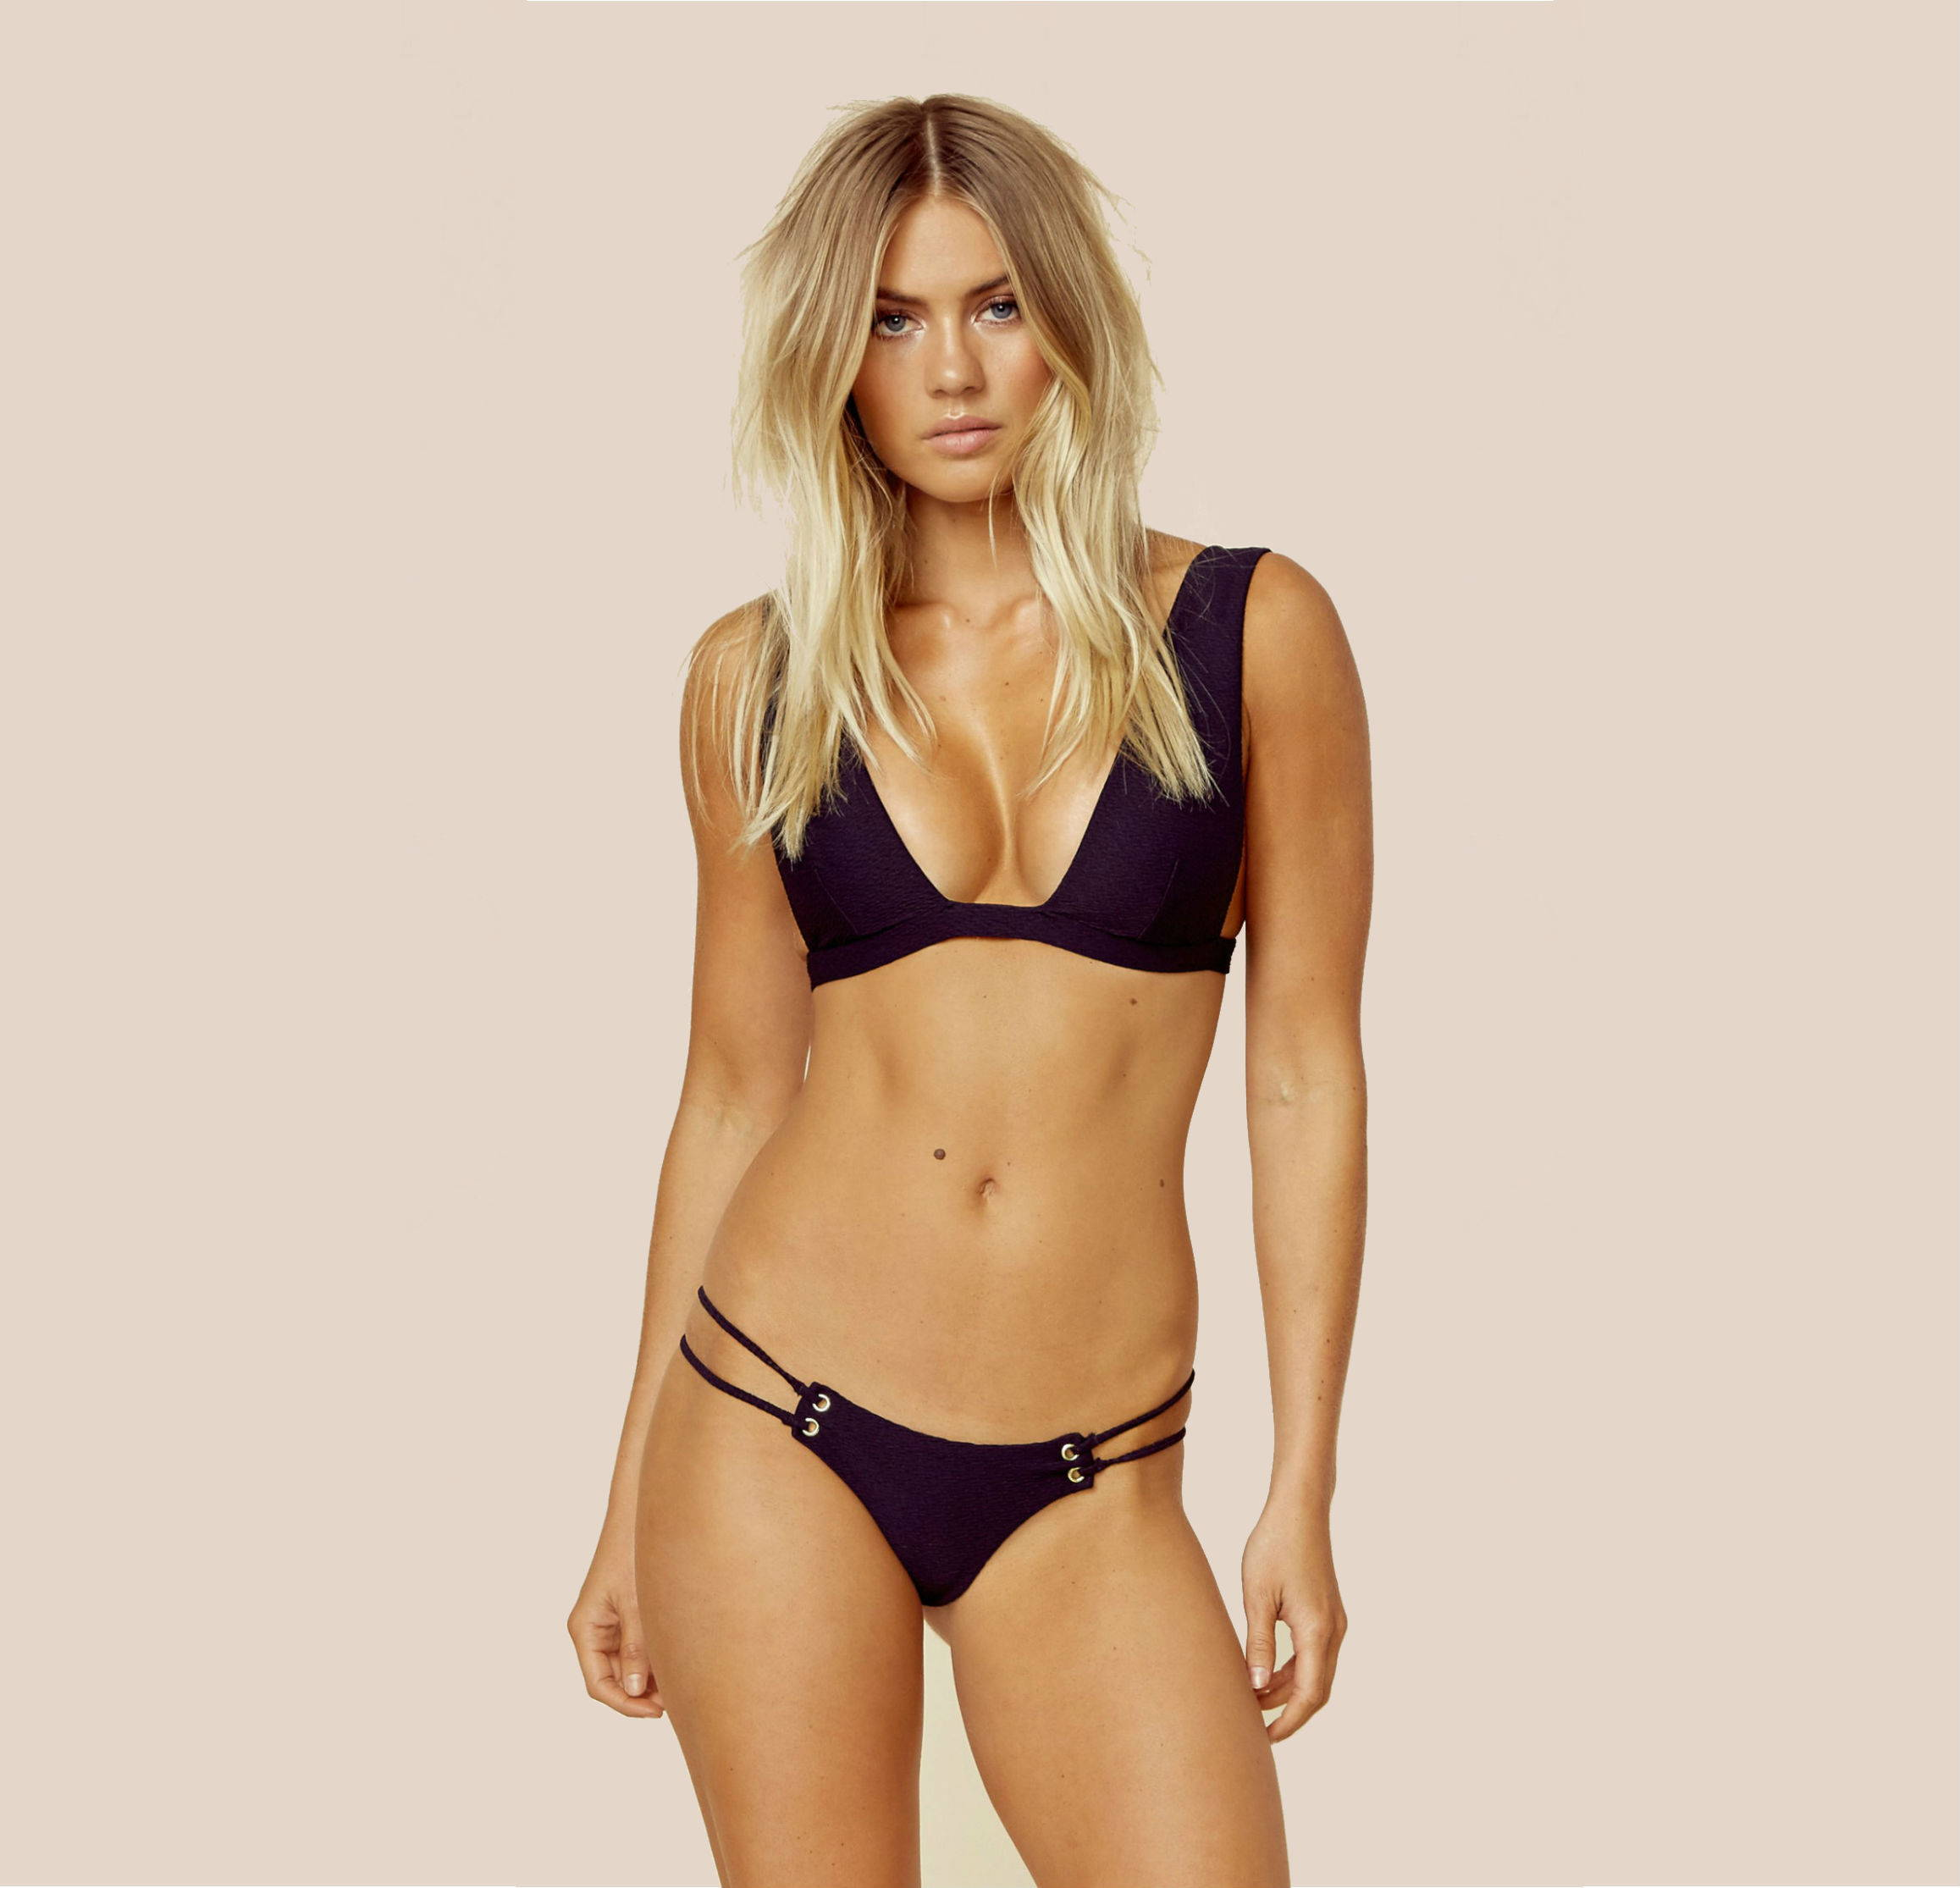 Blue Life Roped Up Halter Bikini Top + Skimpy Bottom